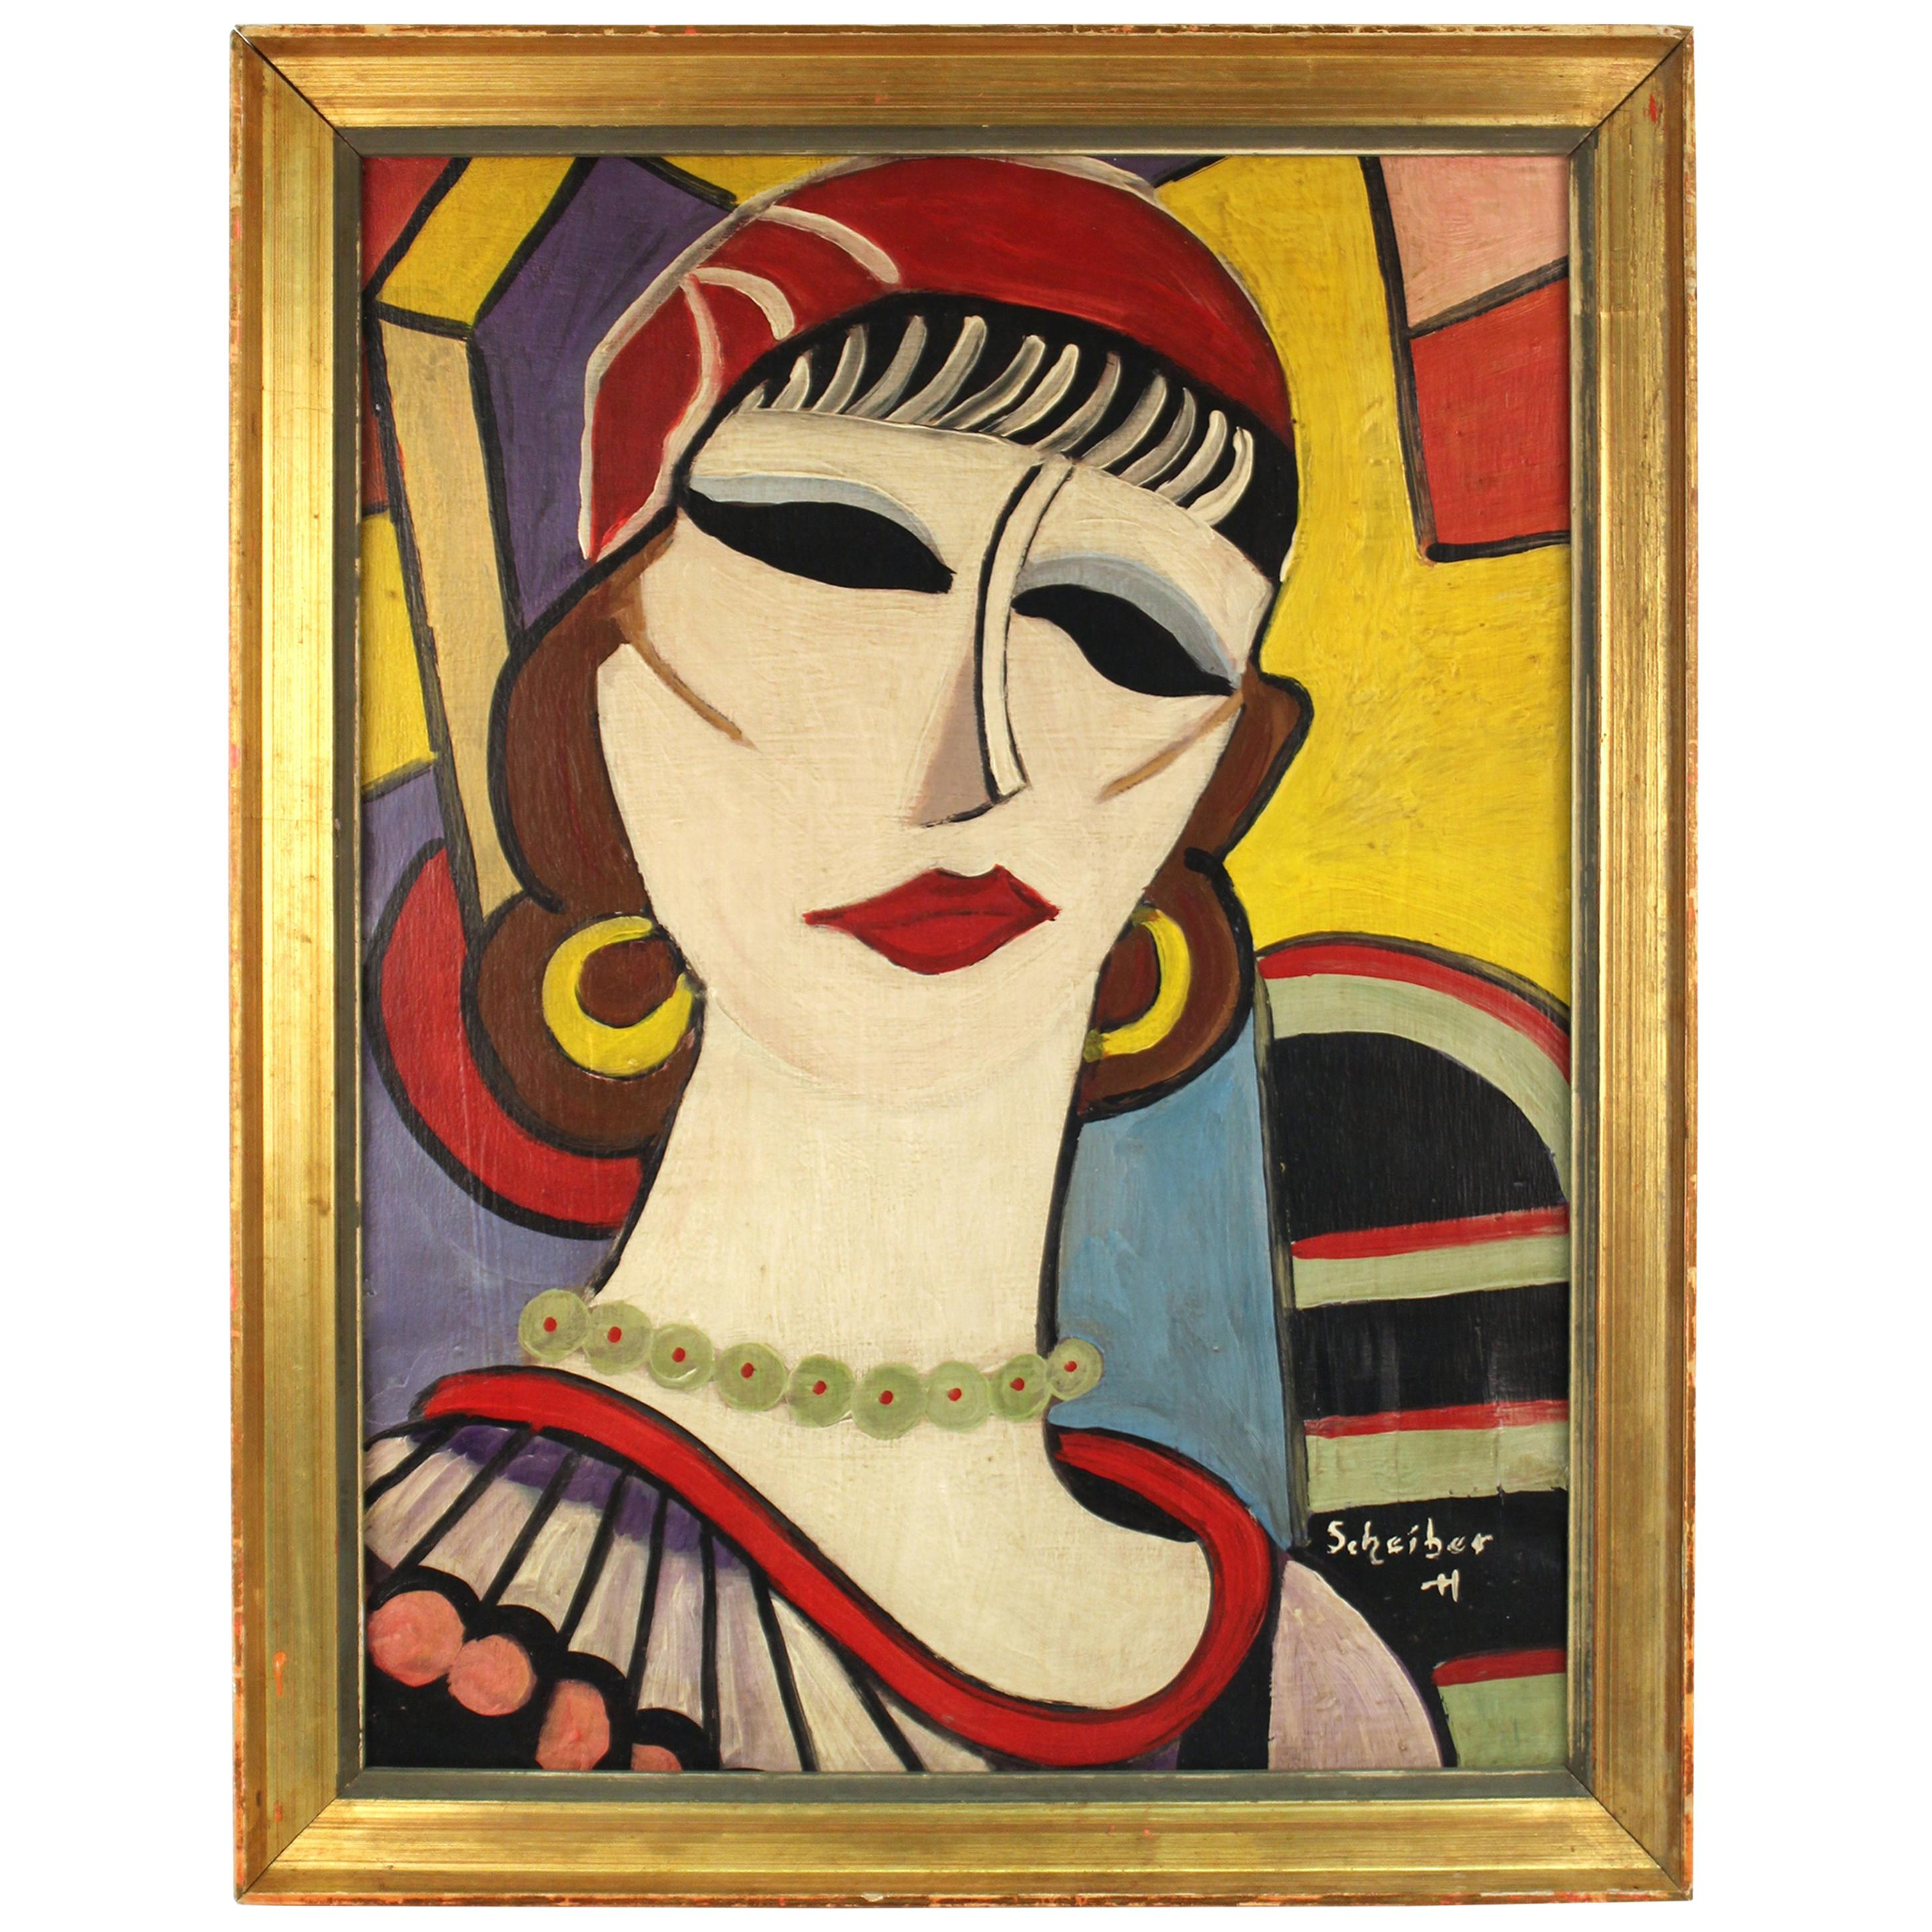 'Portrait of a Lady' Modernist Portrait Painting Attributed to Hugo Scheiber